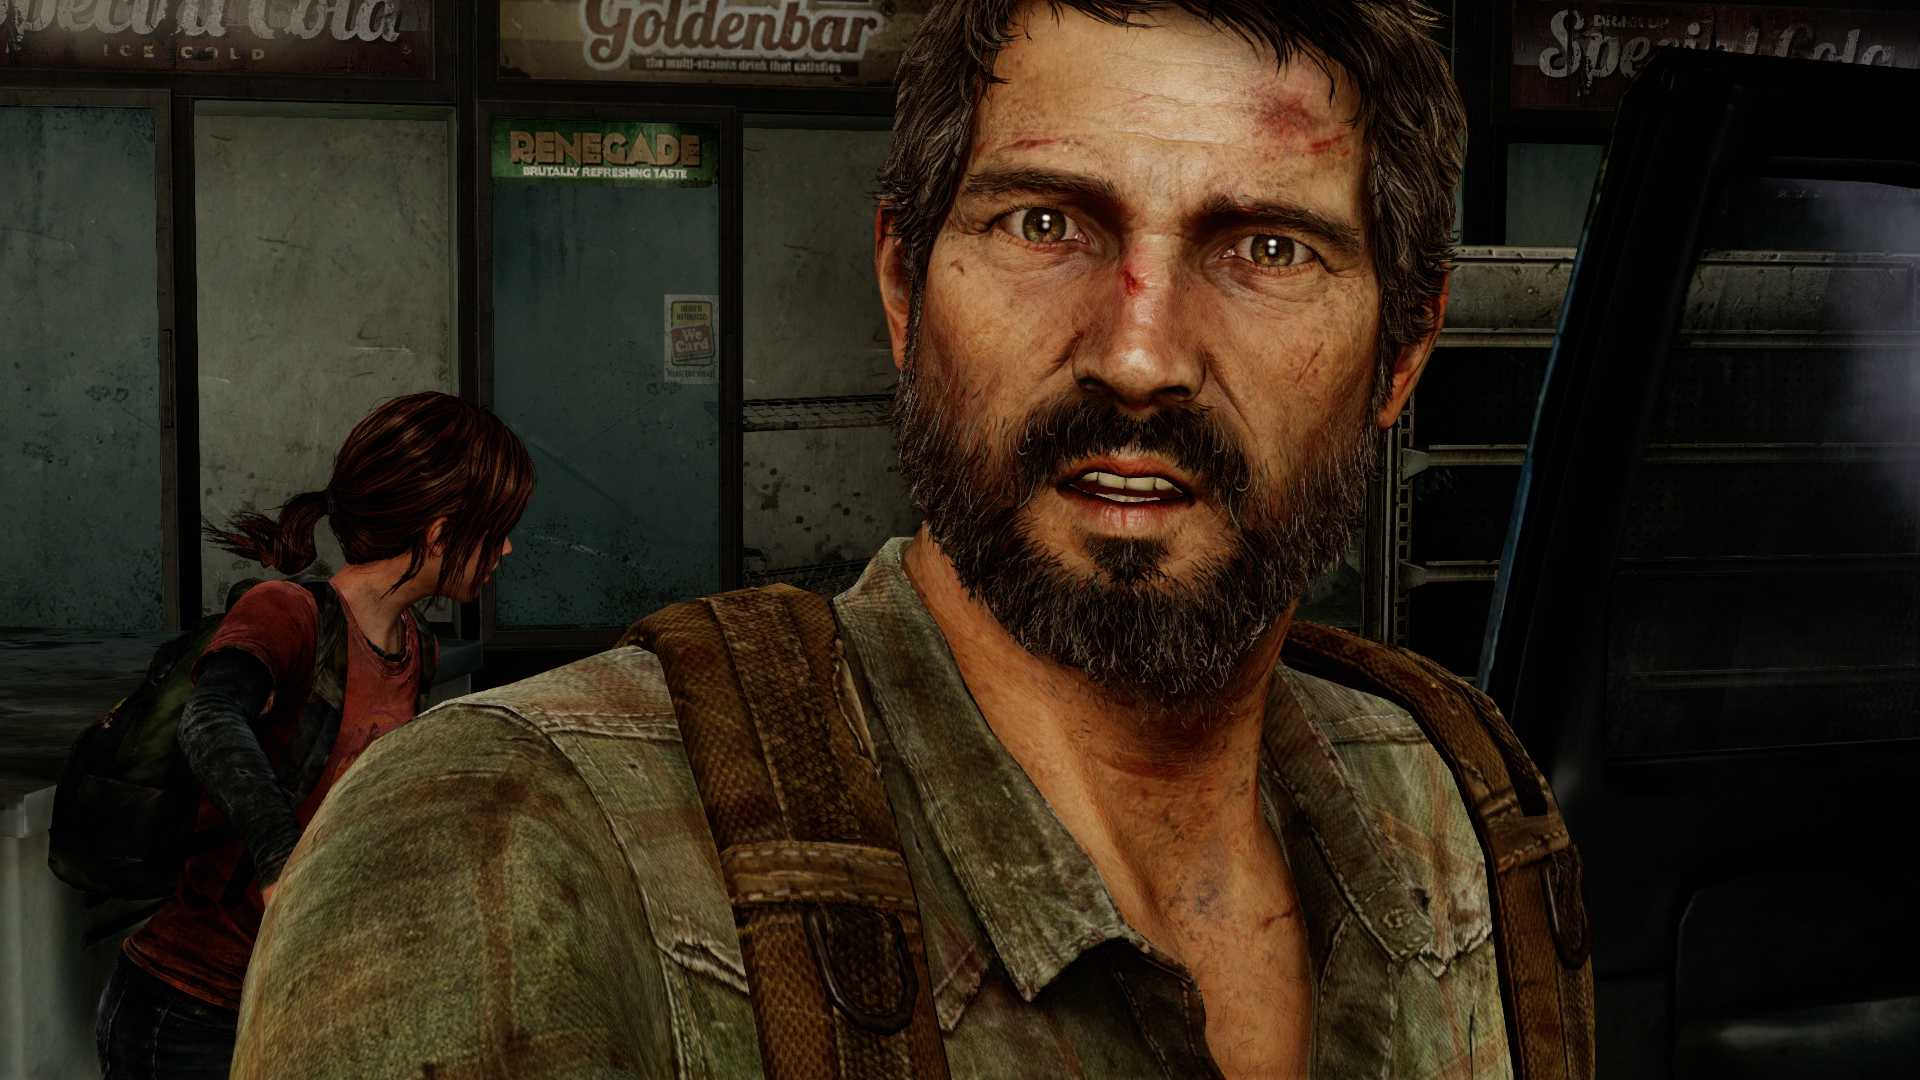 thelastofus-ps4pro-ps4-frikigamers-com